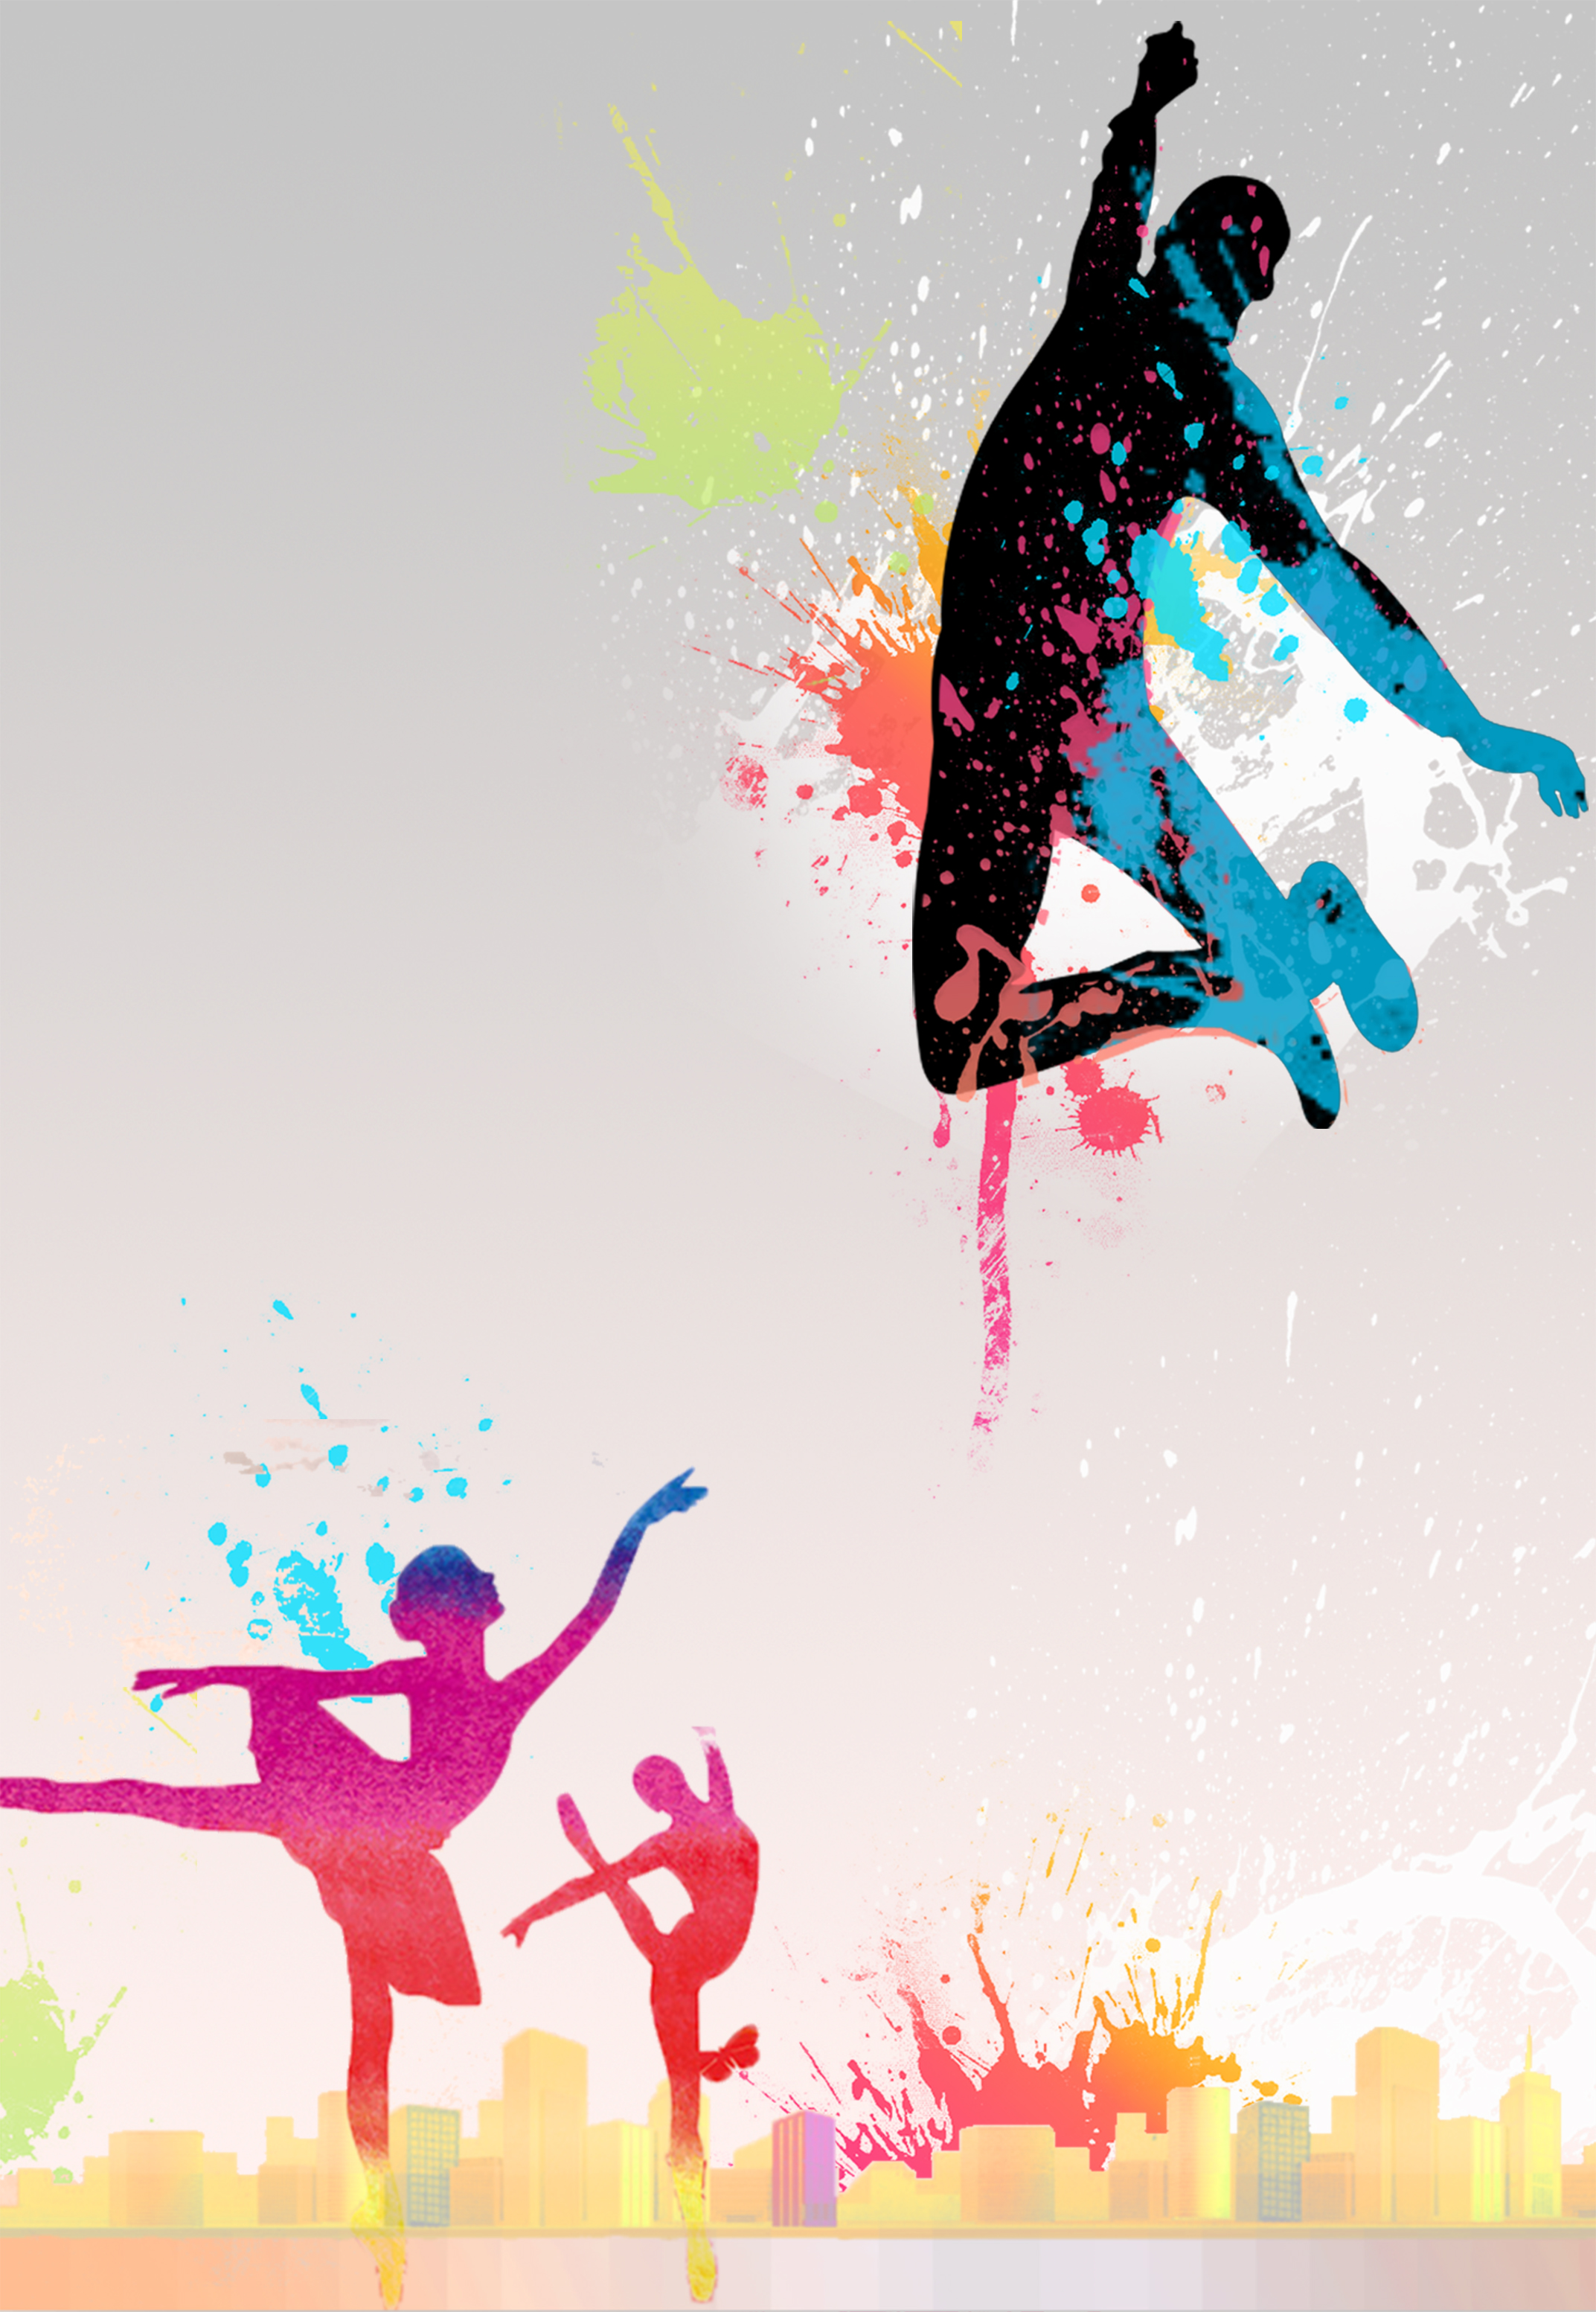 Fall Leaves Dancing Wallpaper Color Ink Silhouette Dance Training Recruitment Poster